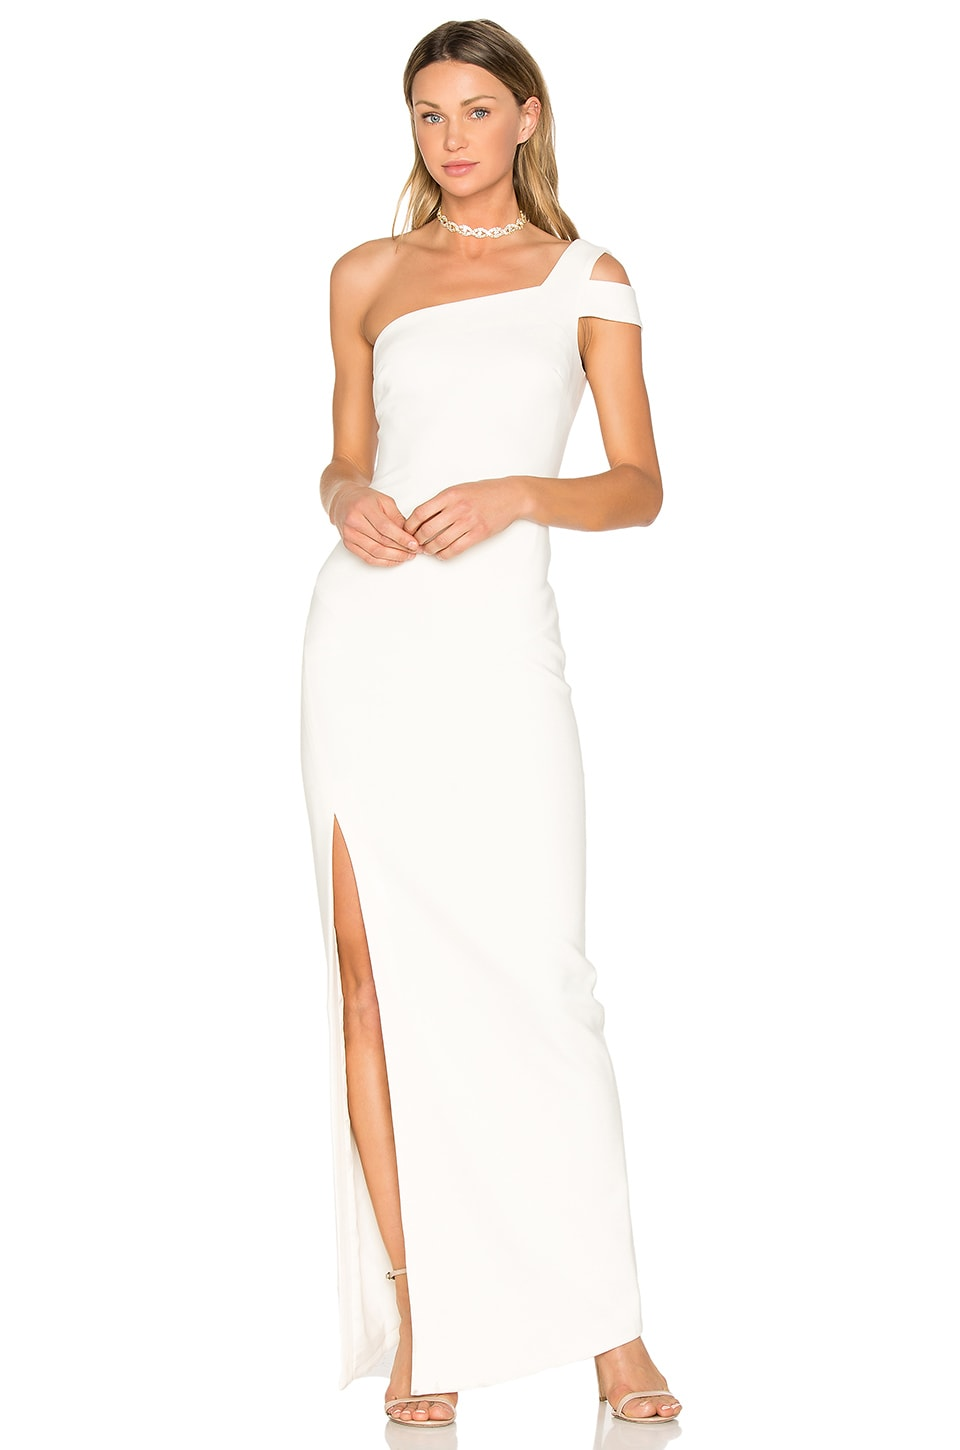 LIKELY Maxson Gown in White